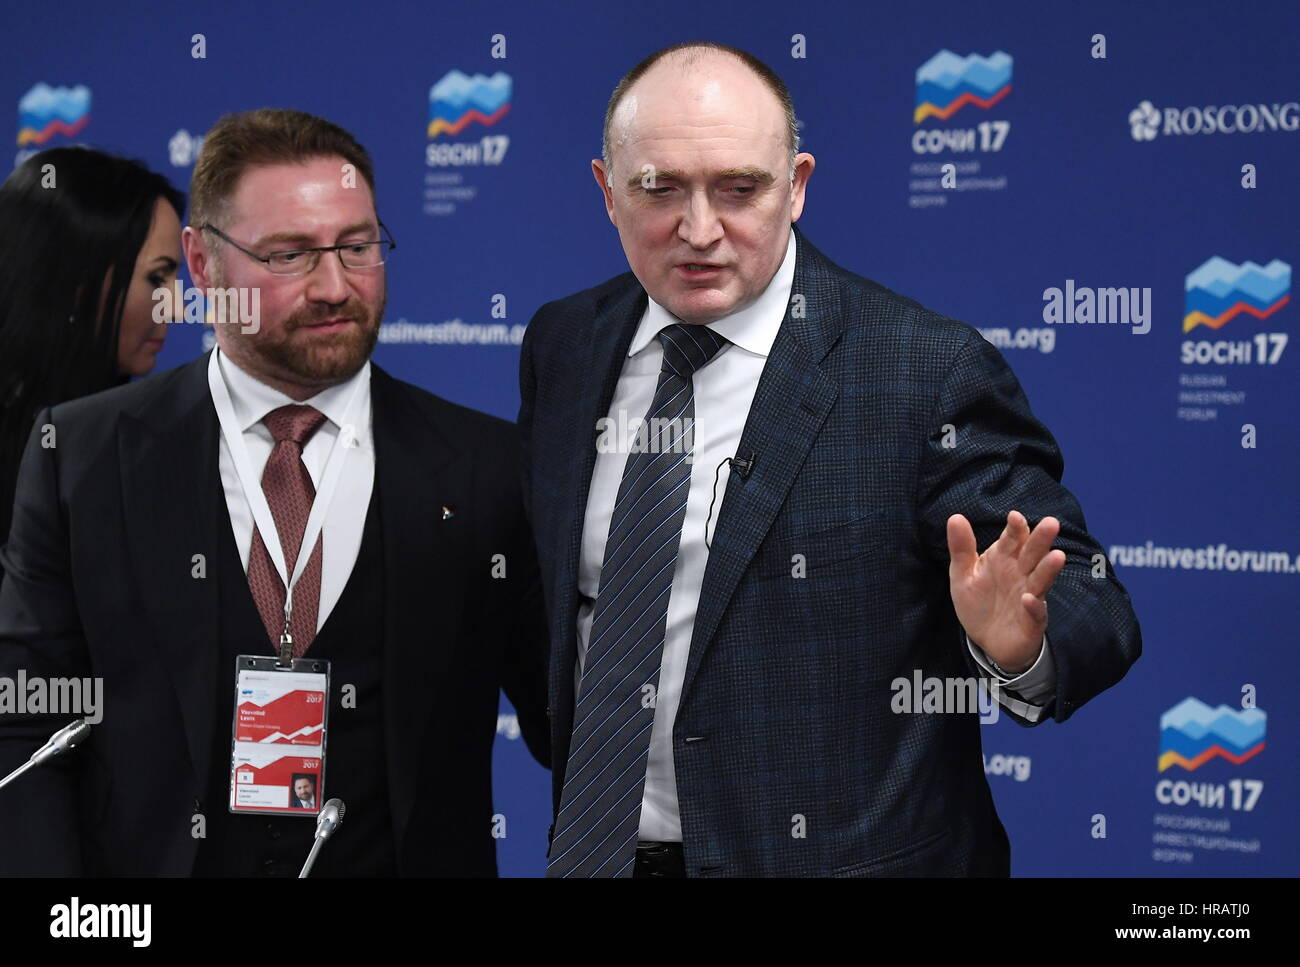 Sochi, Russia. 28th Feb, 2017. Russian Copper Company President Vsevolod Levin (L) and Chelyabinsk Region Governor - Stock Image